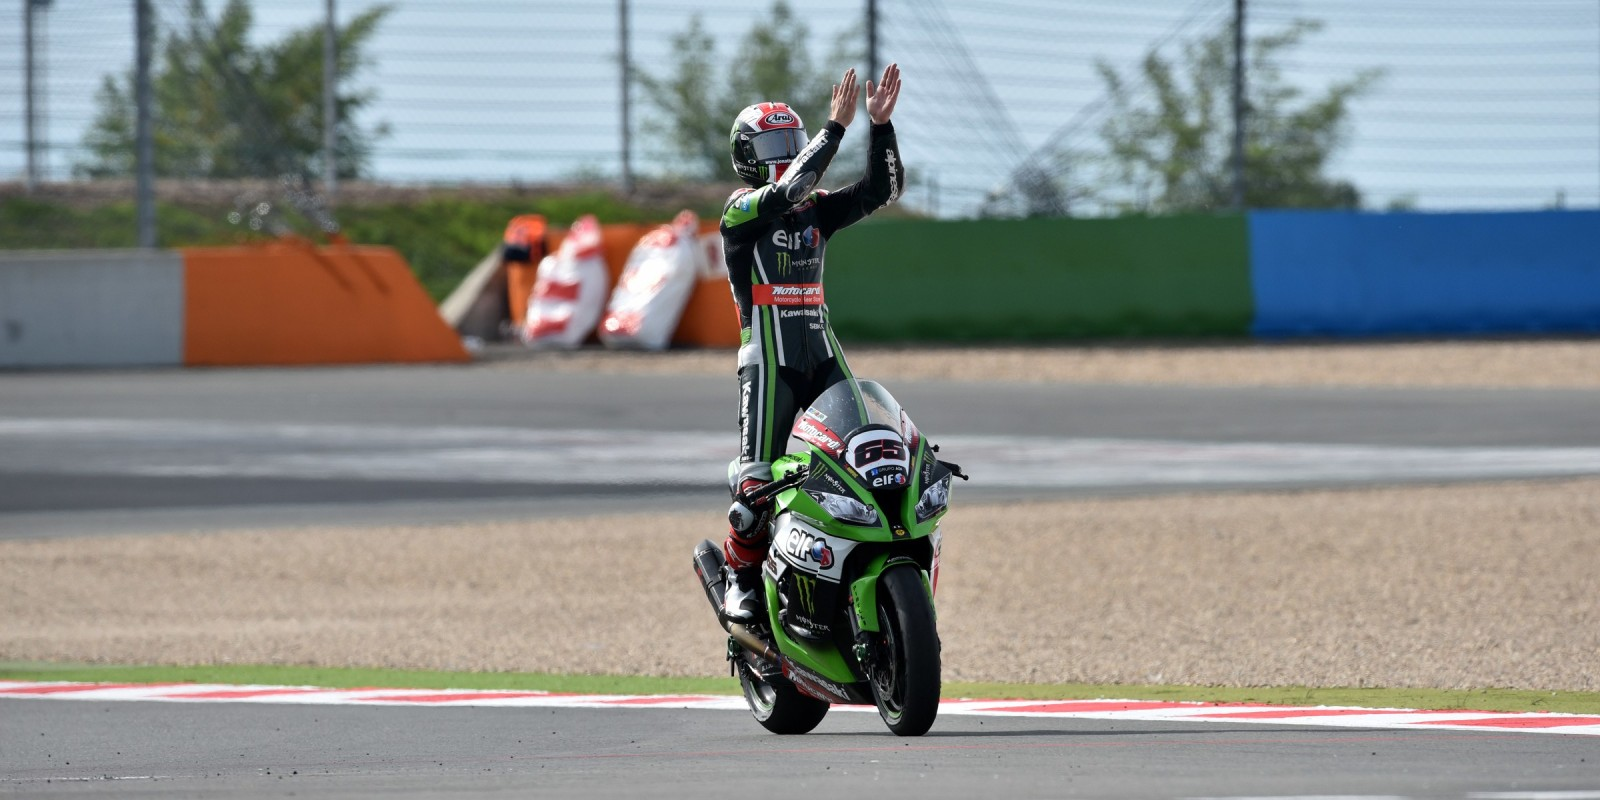 Images of WSB champion Jonny Rea from Magny Cours